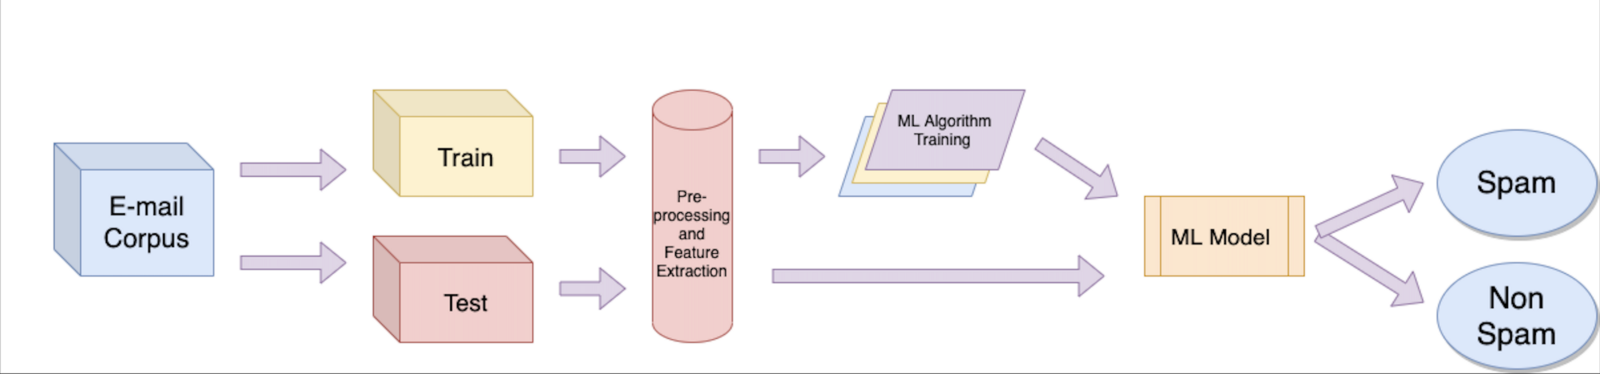 spam email filtering using machine learning image 2